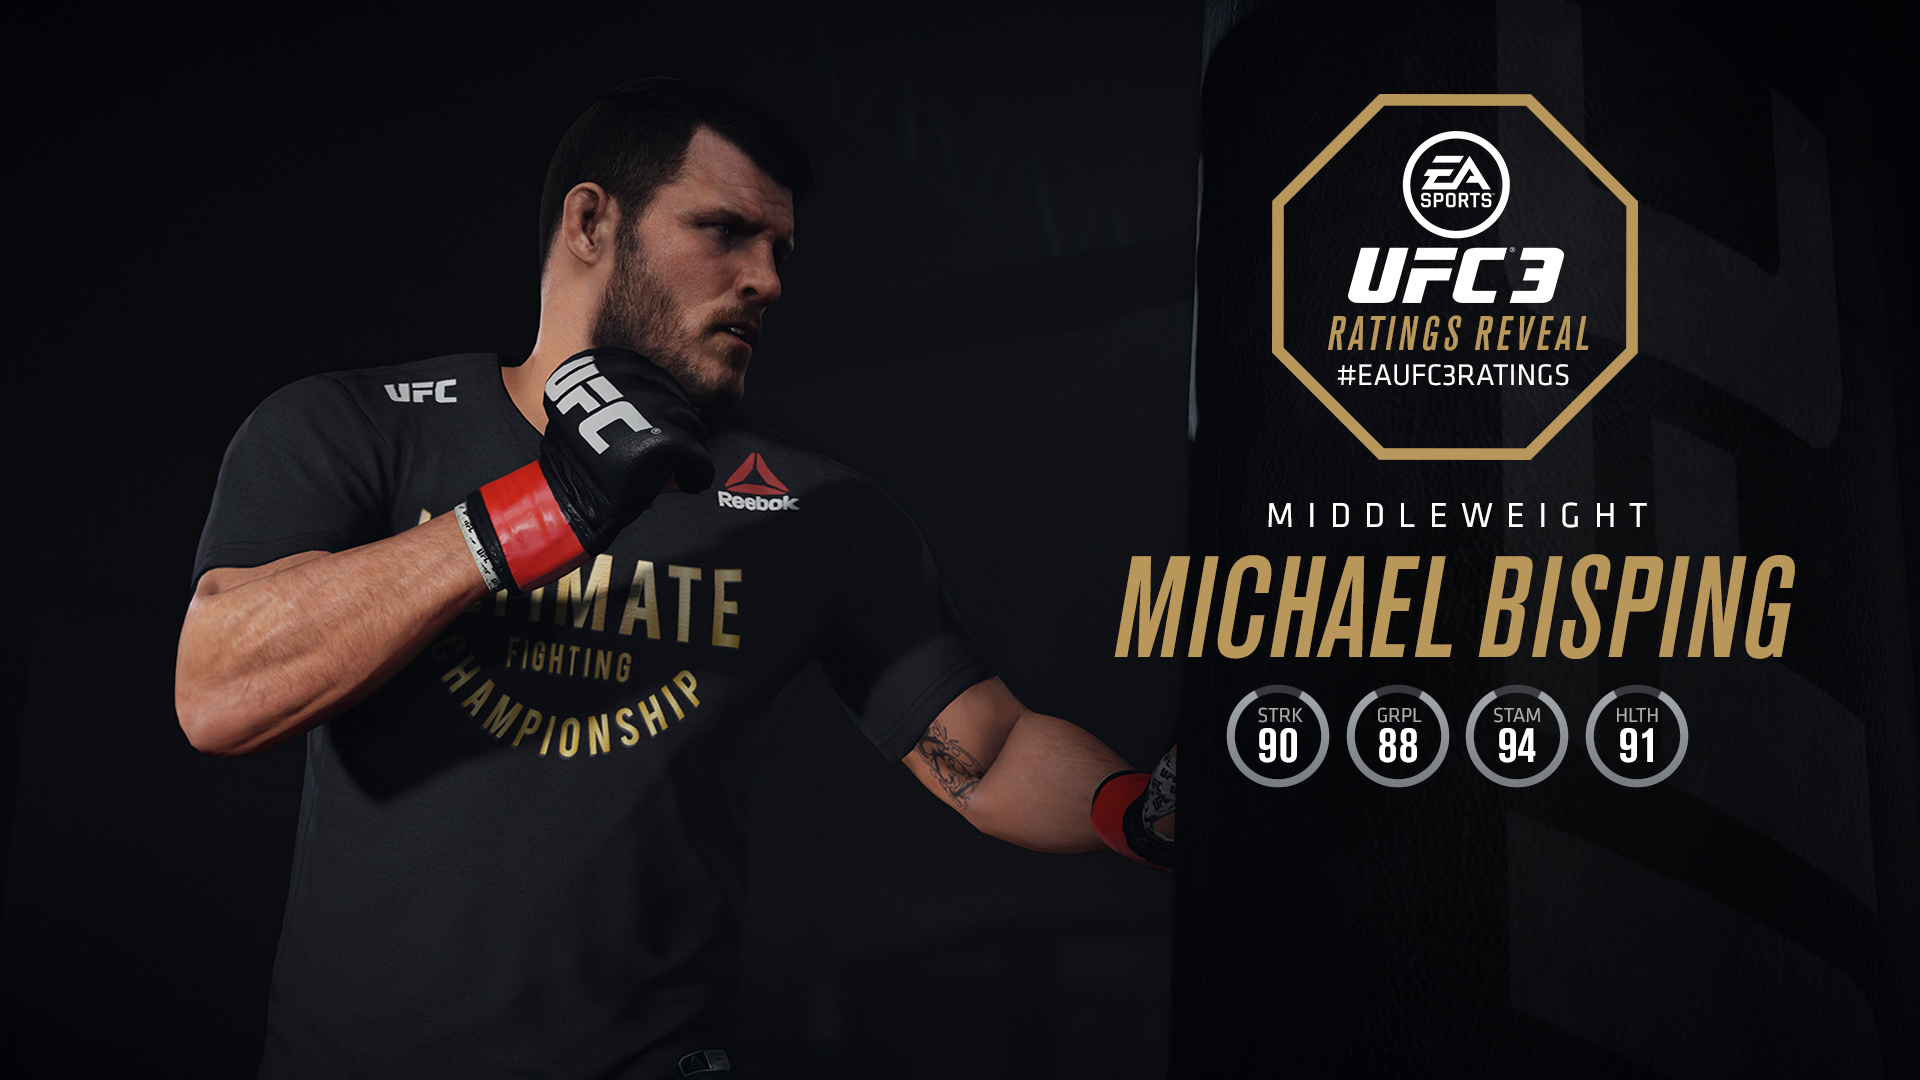 MichaelBisping_Middleweight_1920x1080